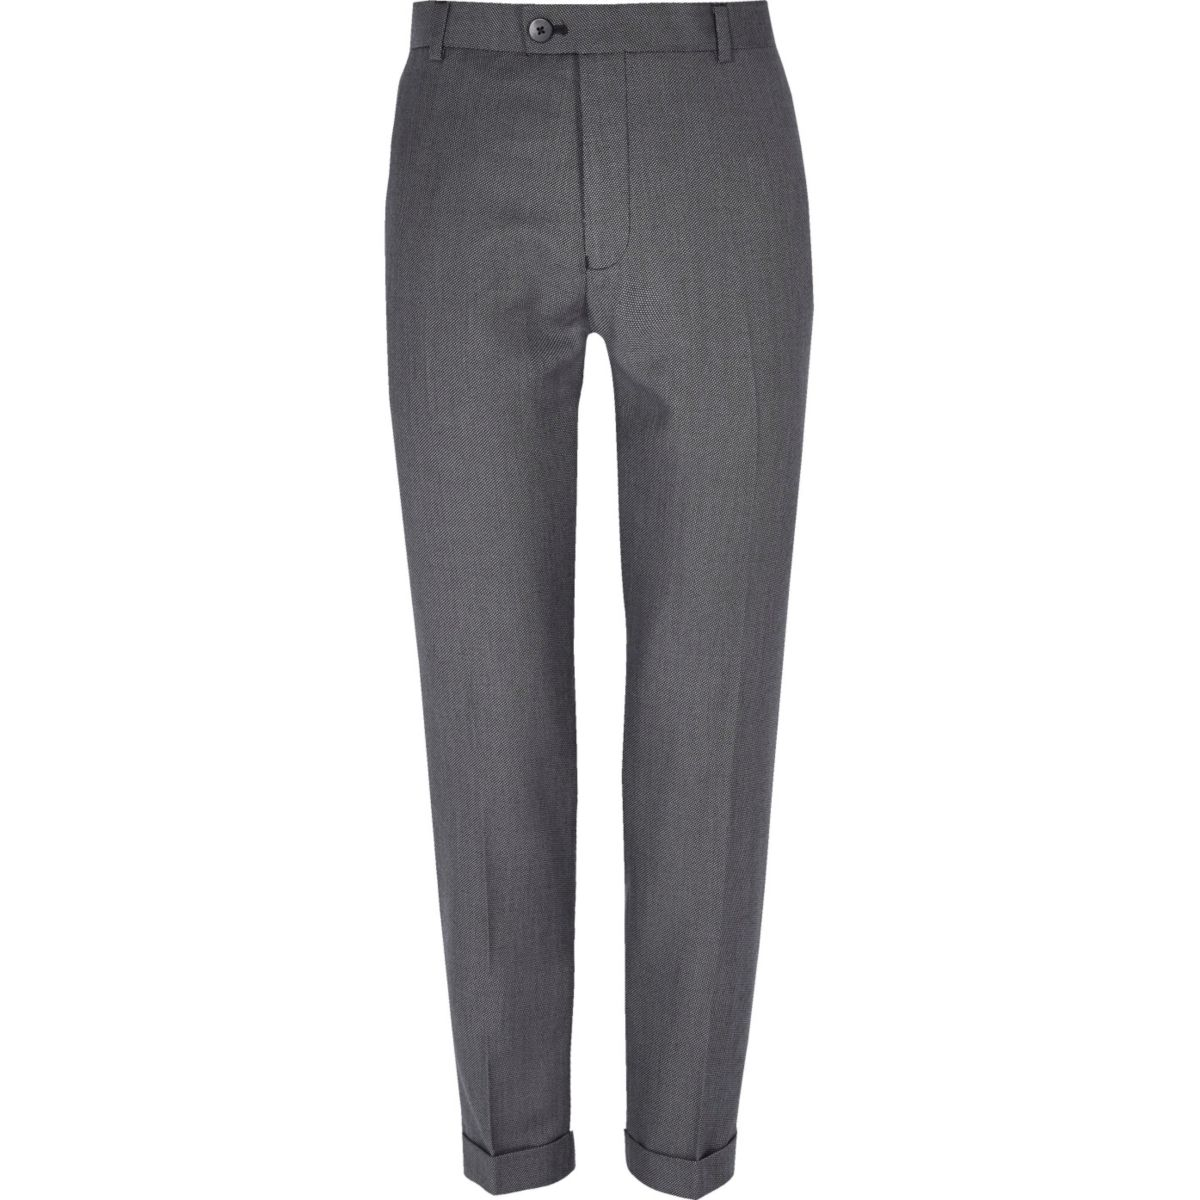 Grey textured skinny suit trousers